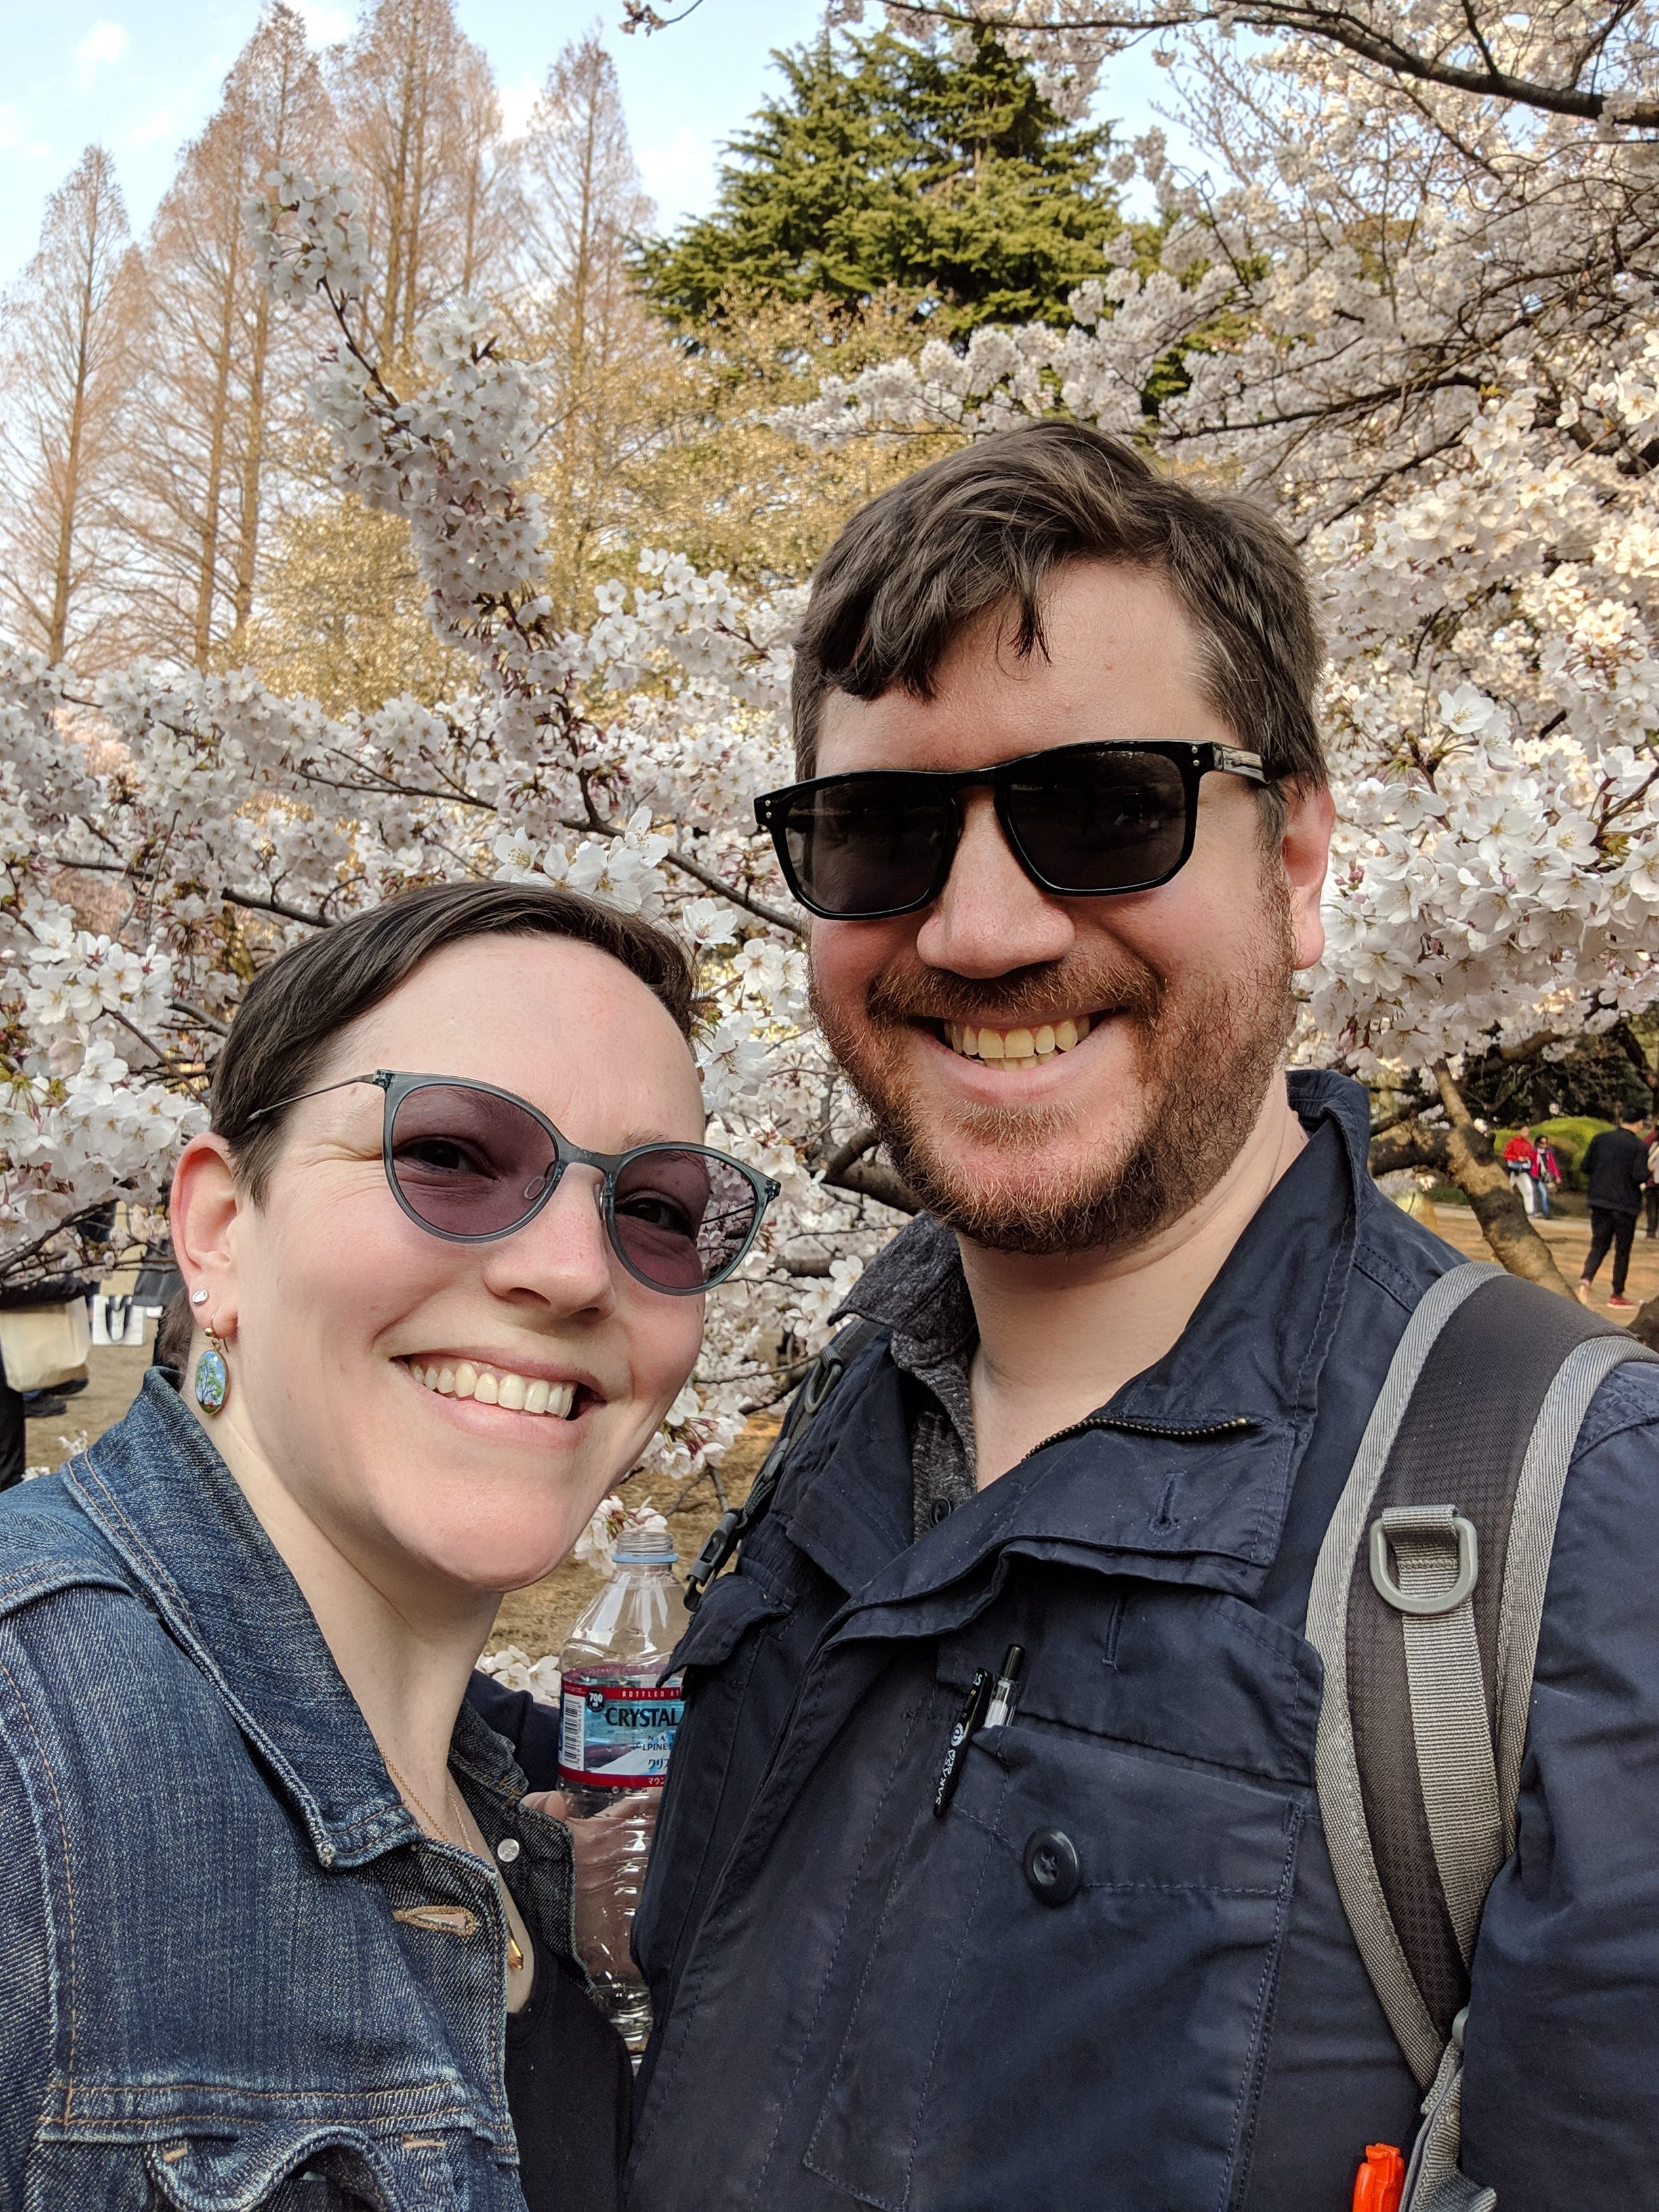 Anne and Scott in Tokyo with cherry blossoms